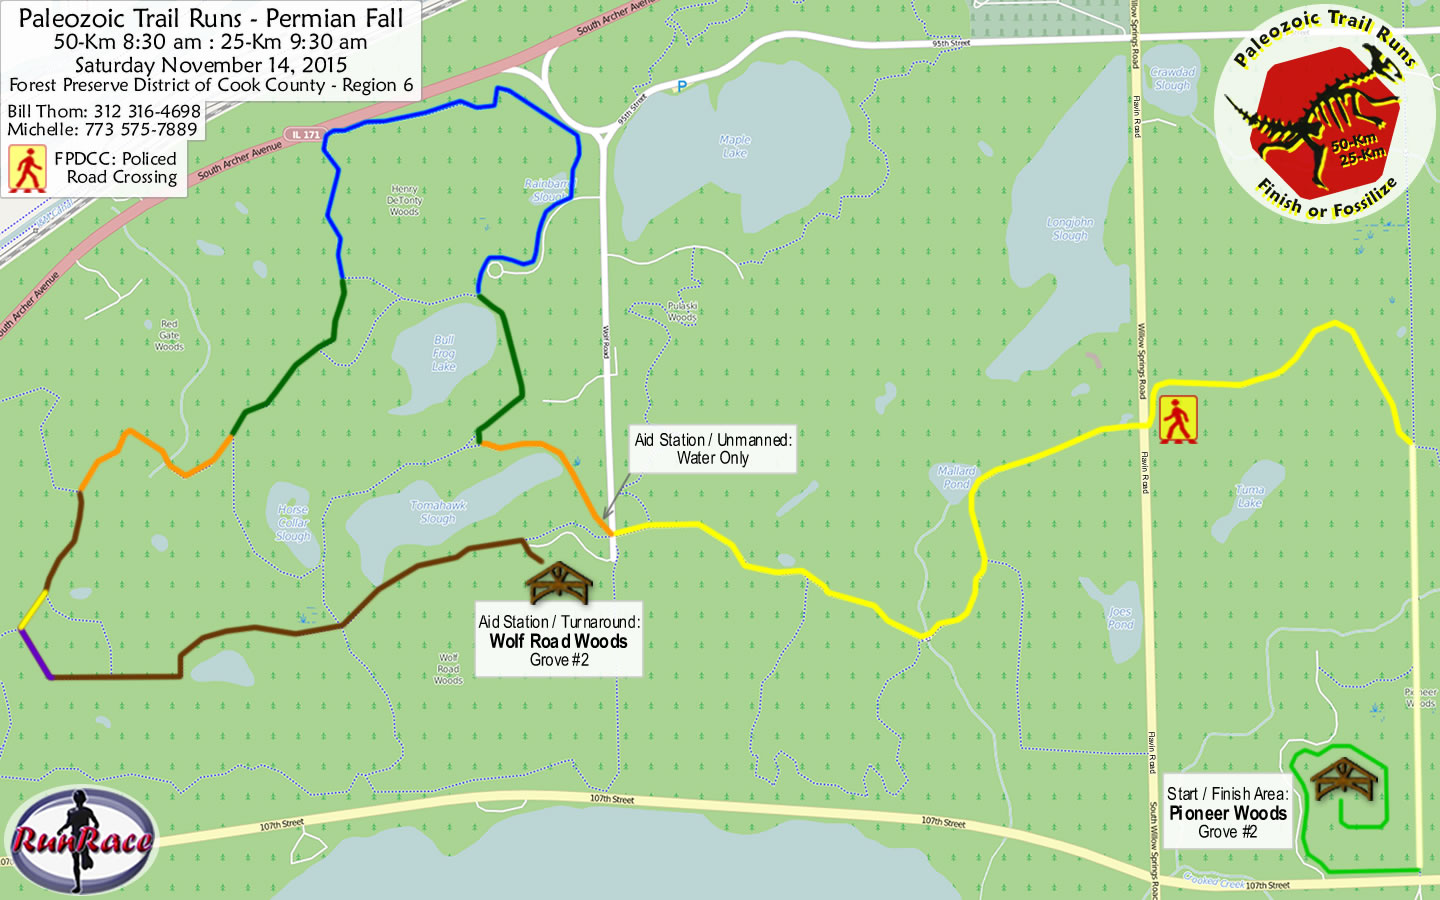 [racecourse map: Paleozoic Trail Runs - Permian Fall]